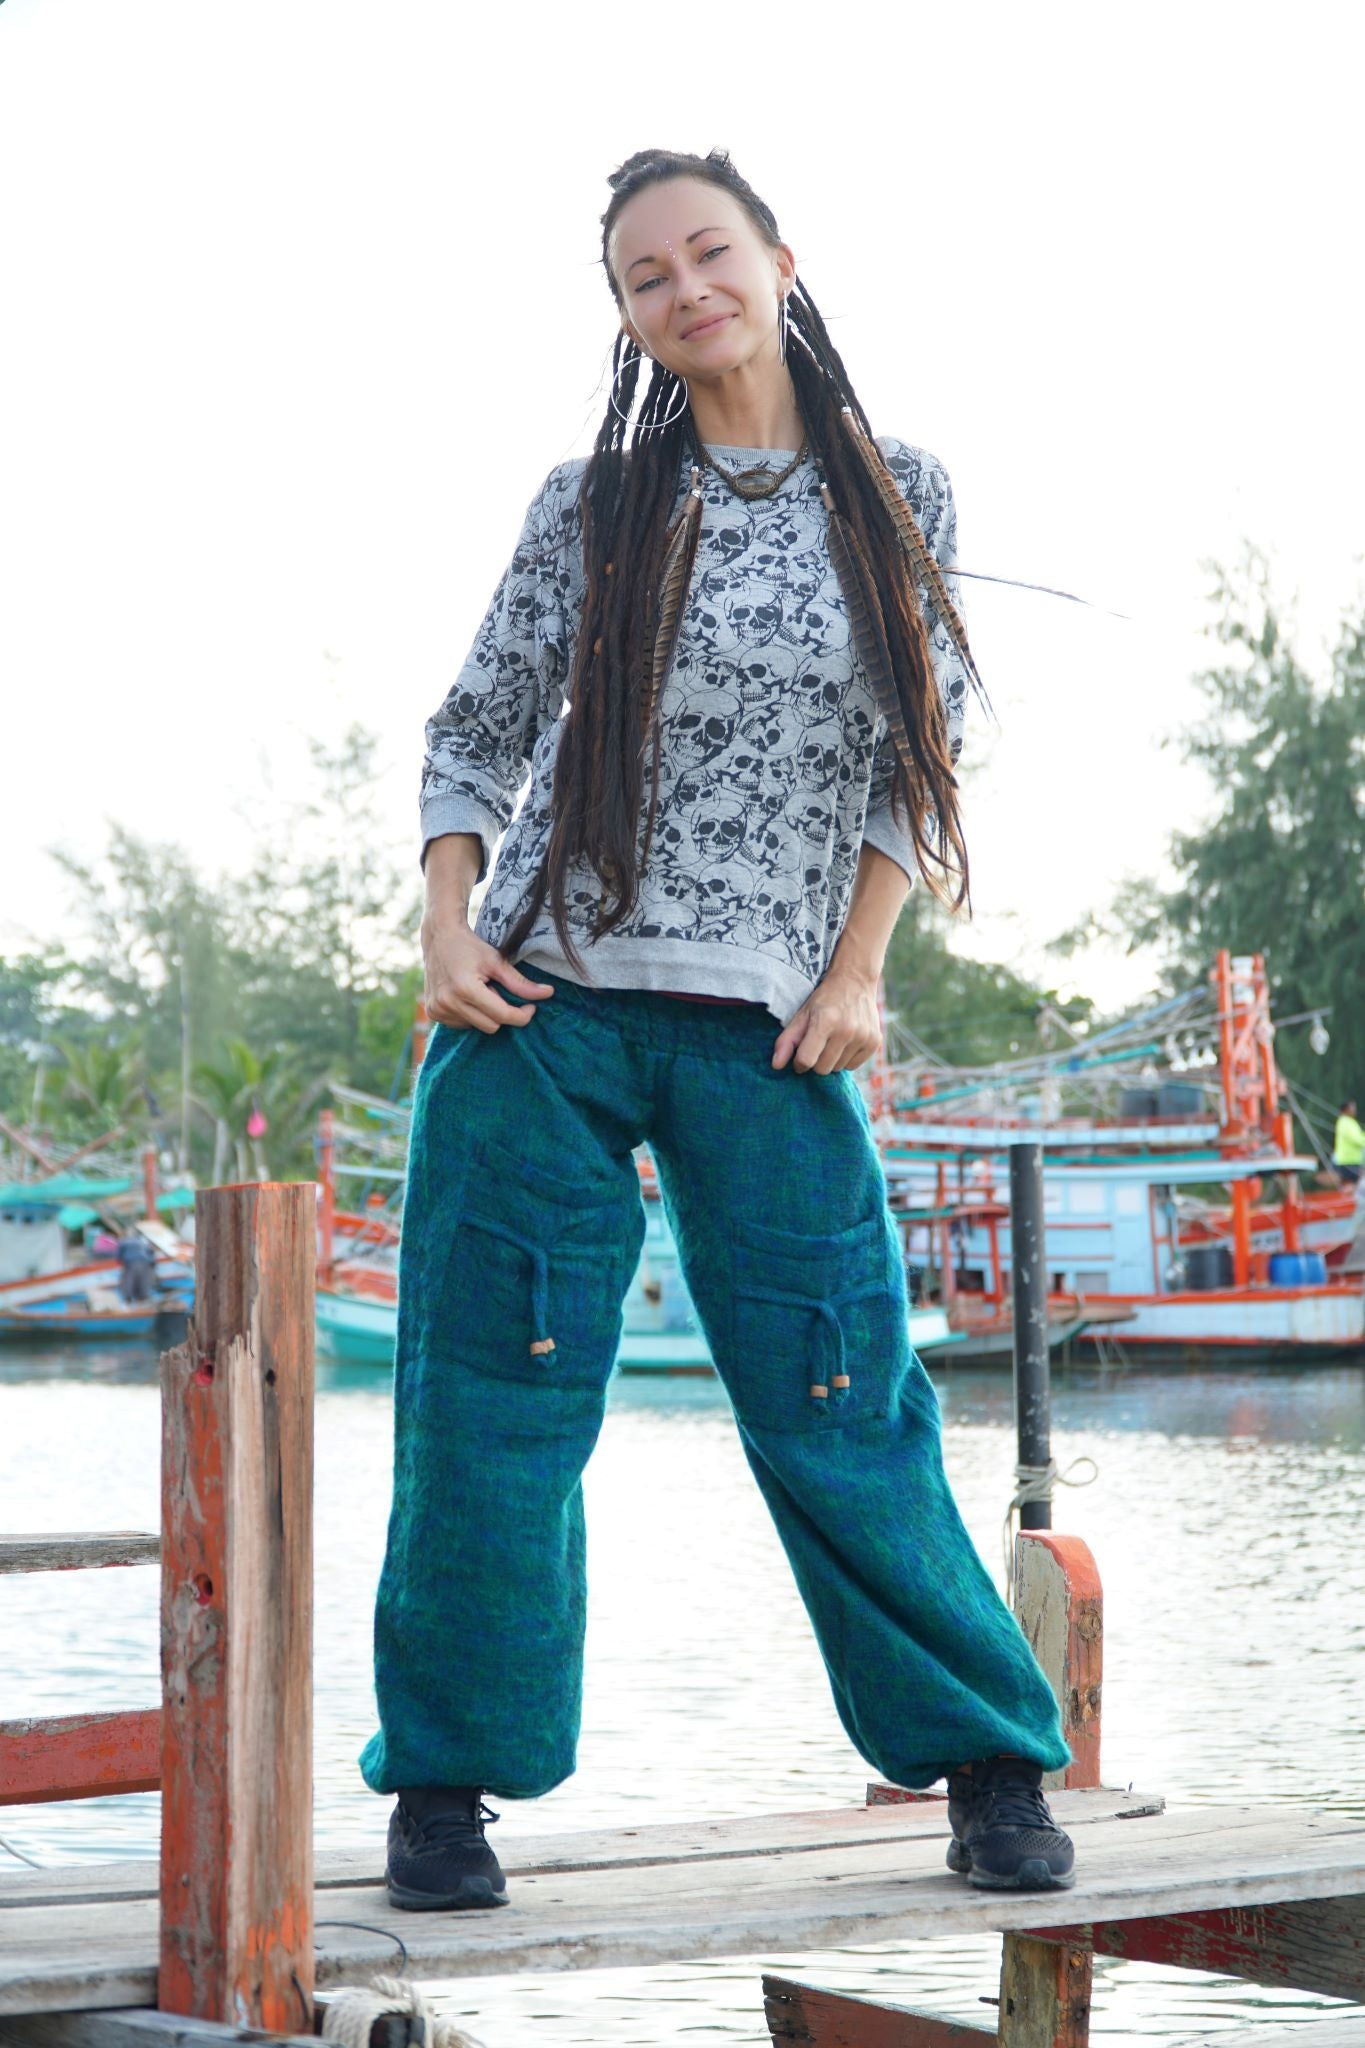 Warm High Crotch Harem Pants - Cashmilon - Blue & Green Mix